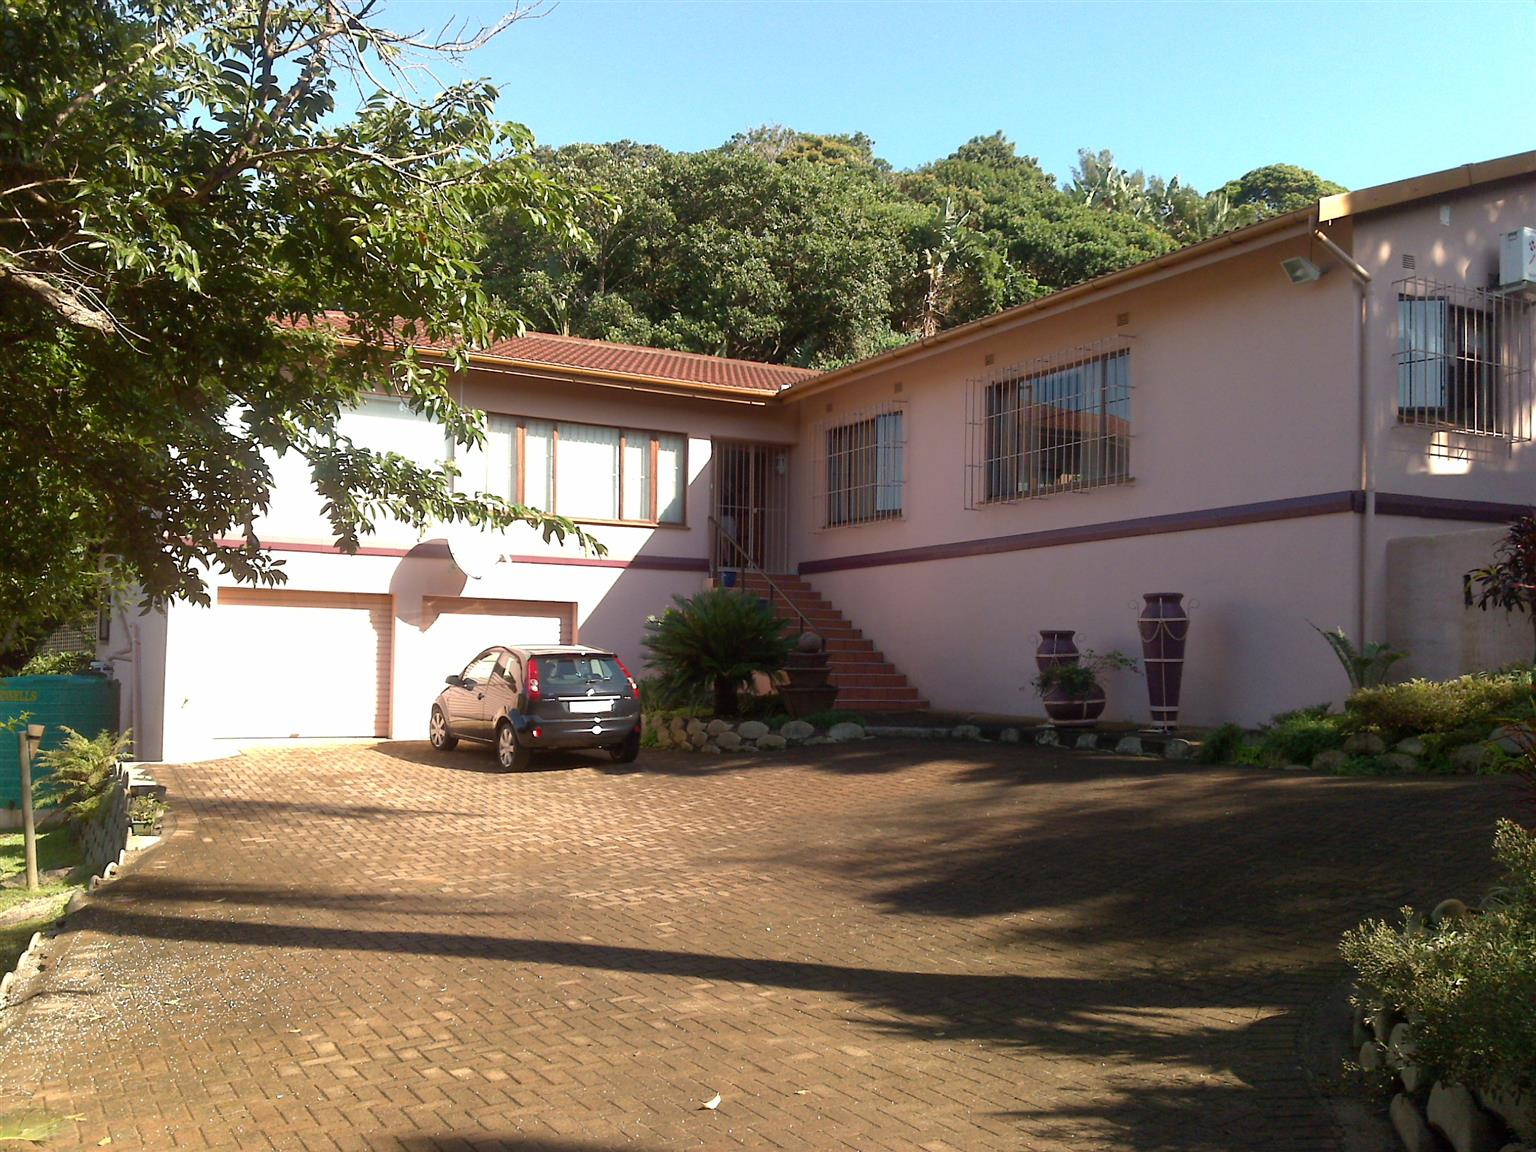 House on Kwazulu Natal South Coast to swop for similar size house in Centurion /Johannesburg North or Johannesburg West area.